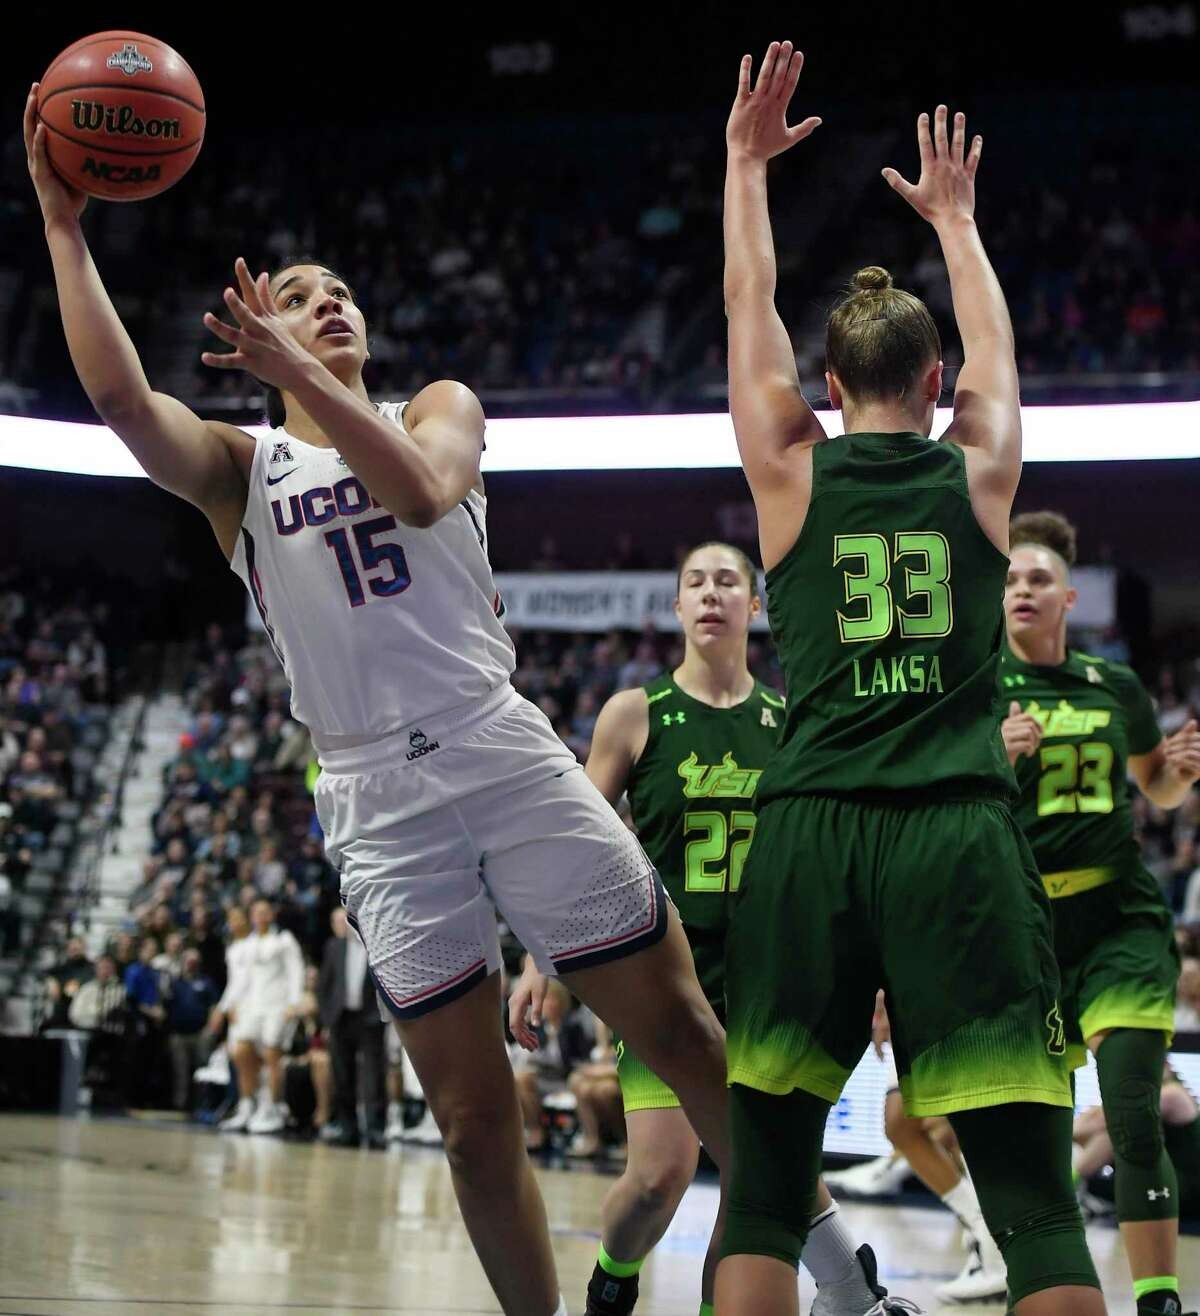 Connecticut's Gabby Williams (15), cuts through the defense of South Florida's Laia Flores (22), Kitija Laksa (33) and Tamara Henshaw (23) for a basket during the first half of an NCAA college basketball game in the American Athletic Conference tournament finals at Mohegan Sun Arena, Tuesday, March 6, 2018, in Uncasville, Conn. (AP Photo/Jessica Hill)